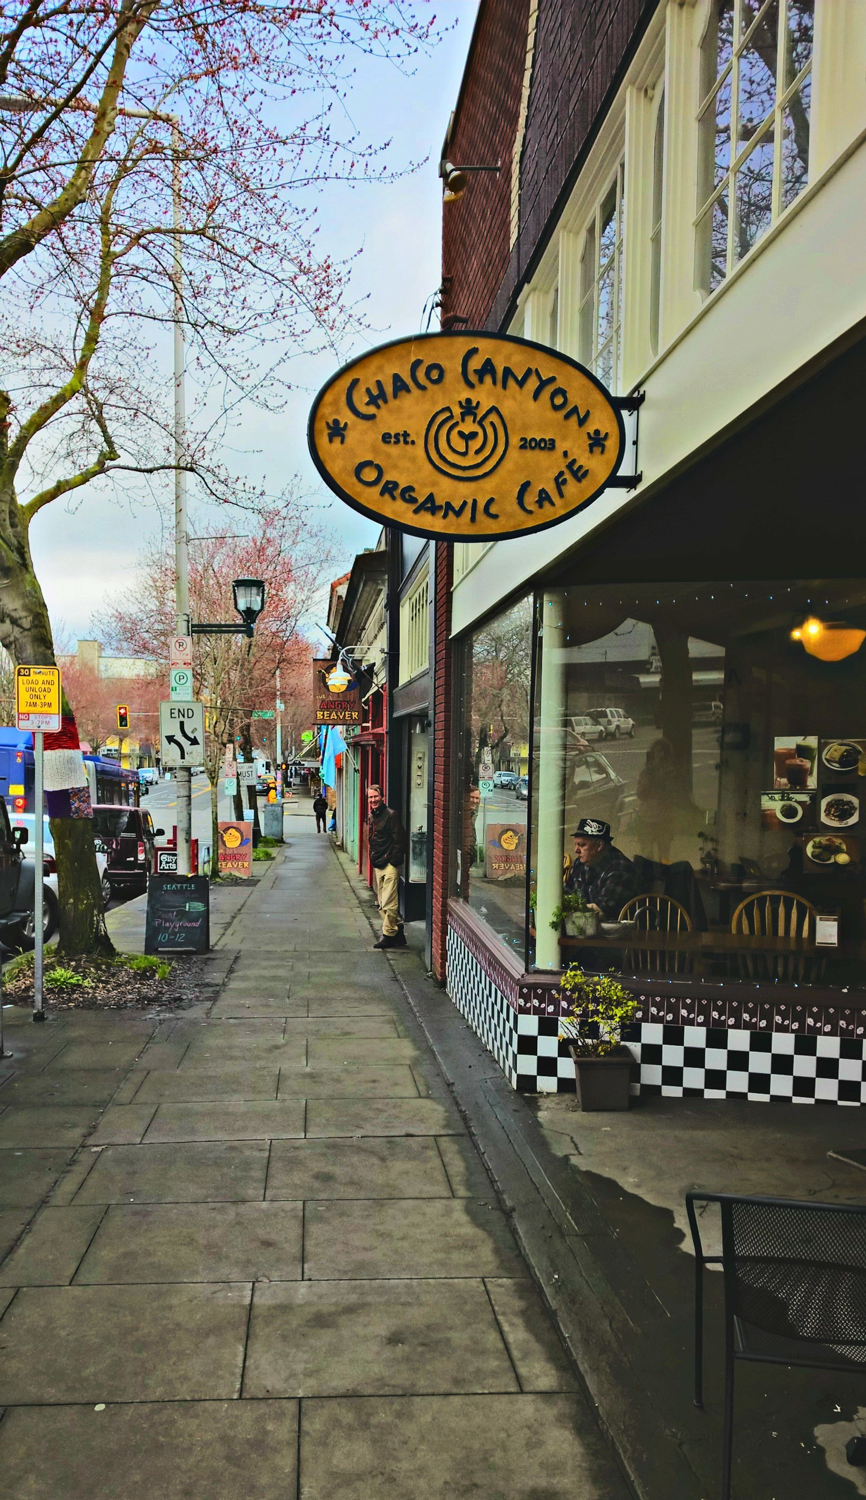 Chaco Canyon Organic Cafe in Seattle, WA | OMventure.com